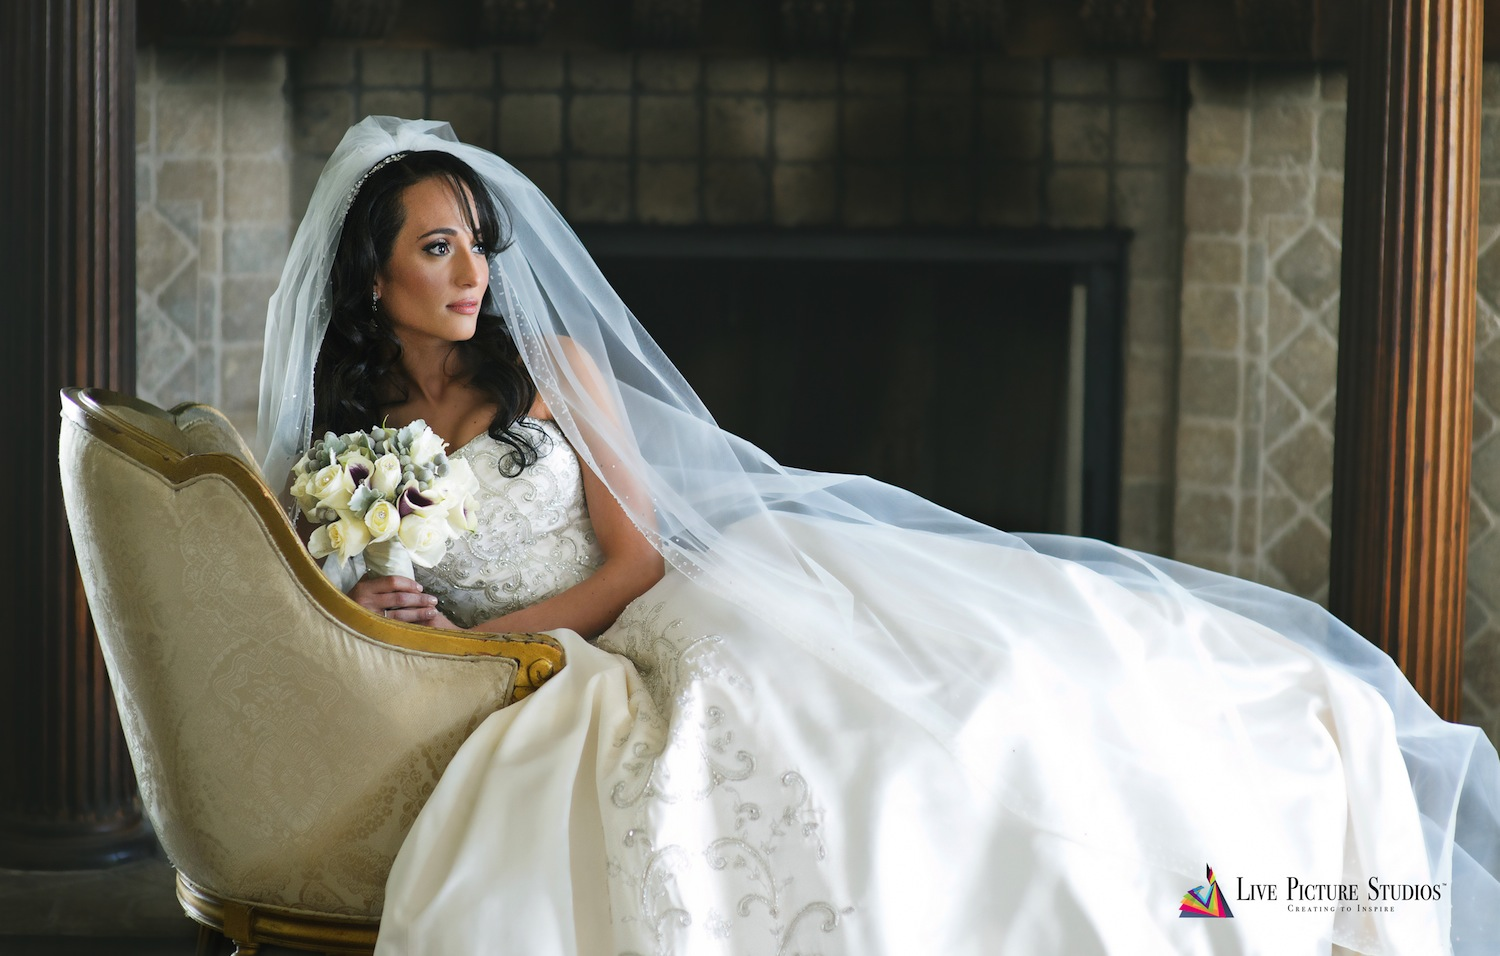 dolly-lying-on-couch-in-wedding-dress-with-bouquet-nj-wedding-photography